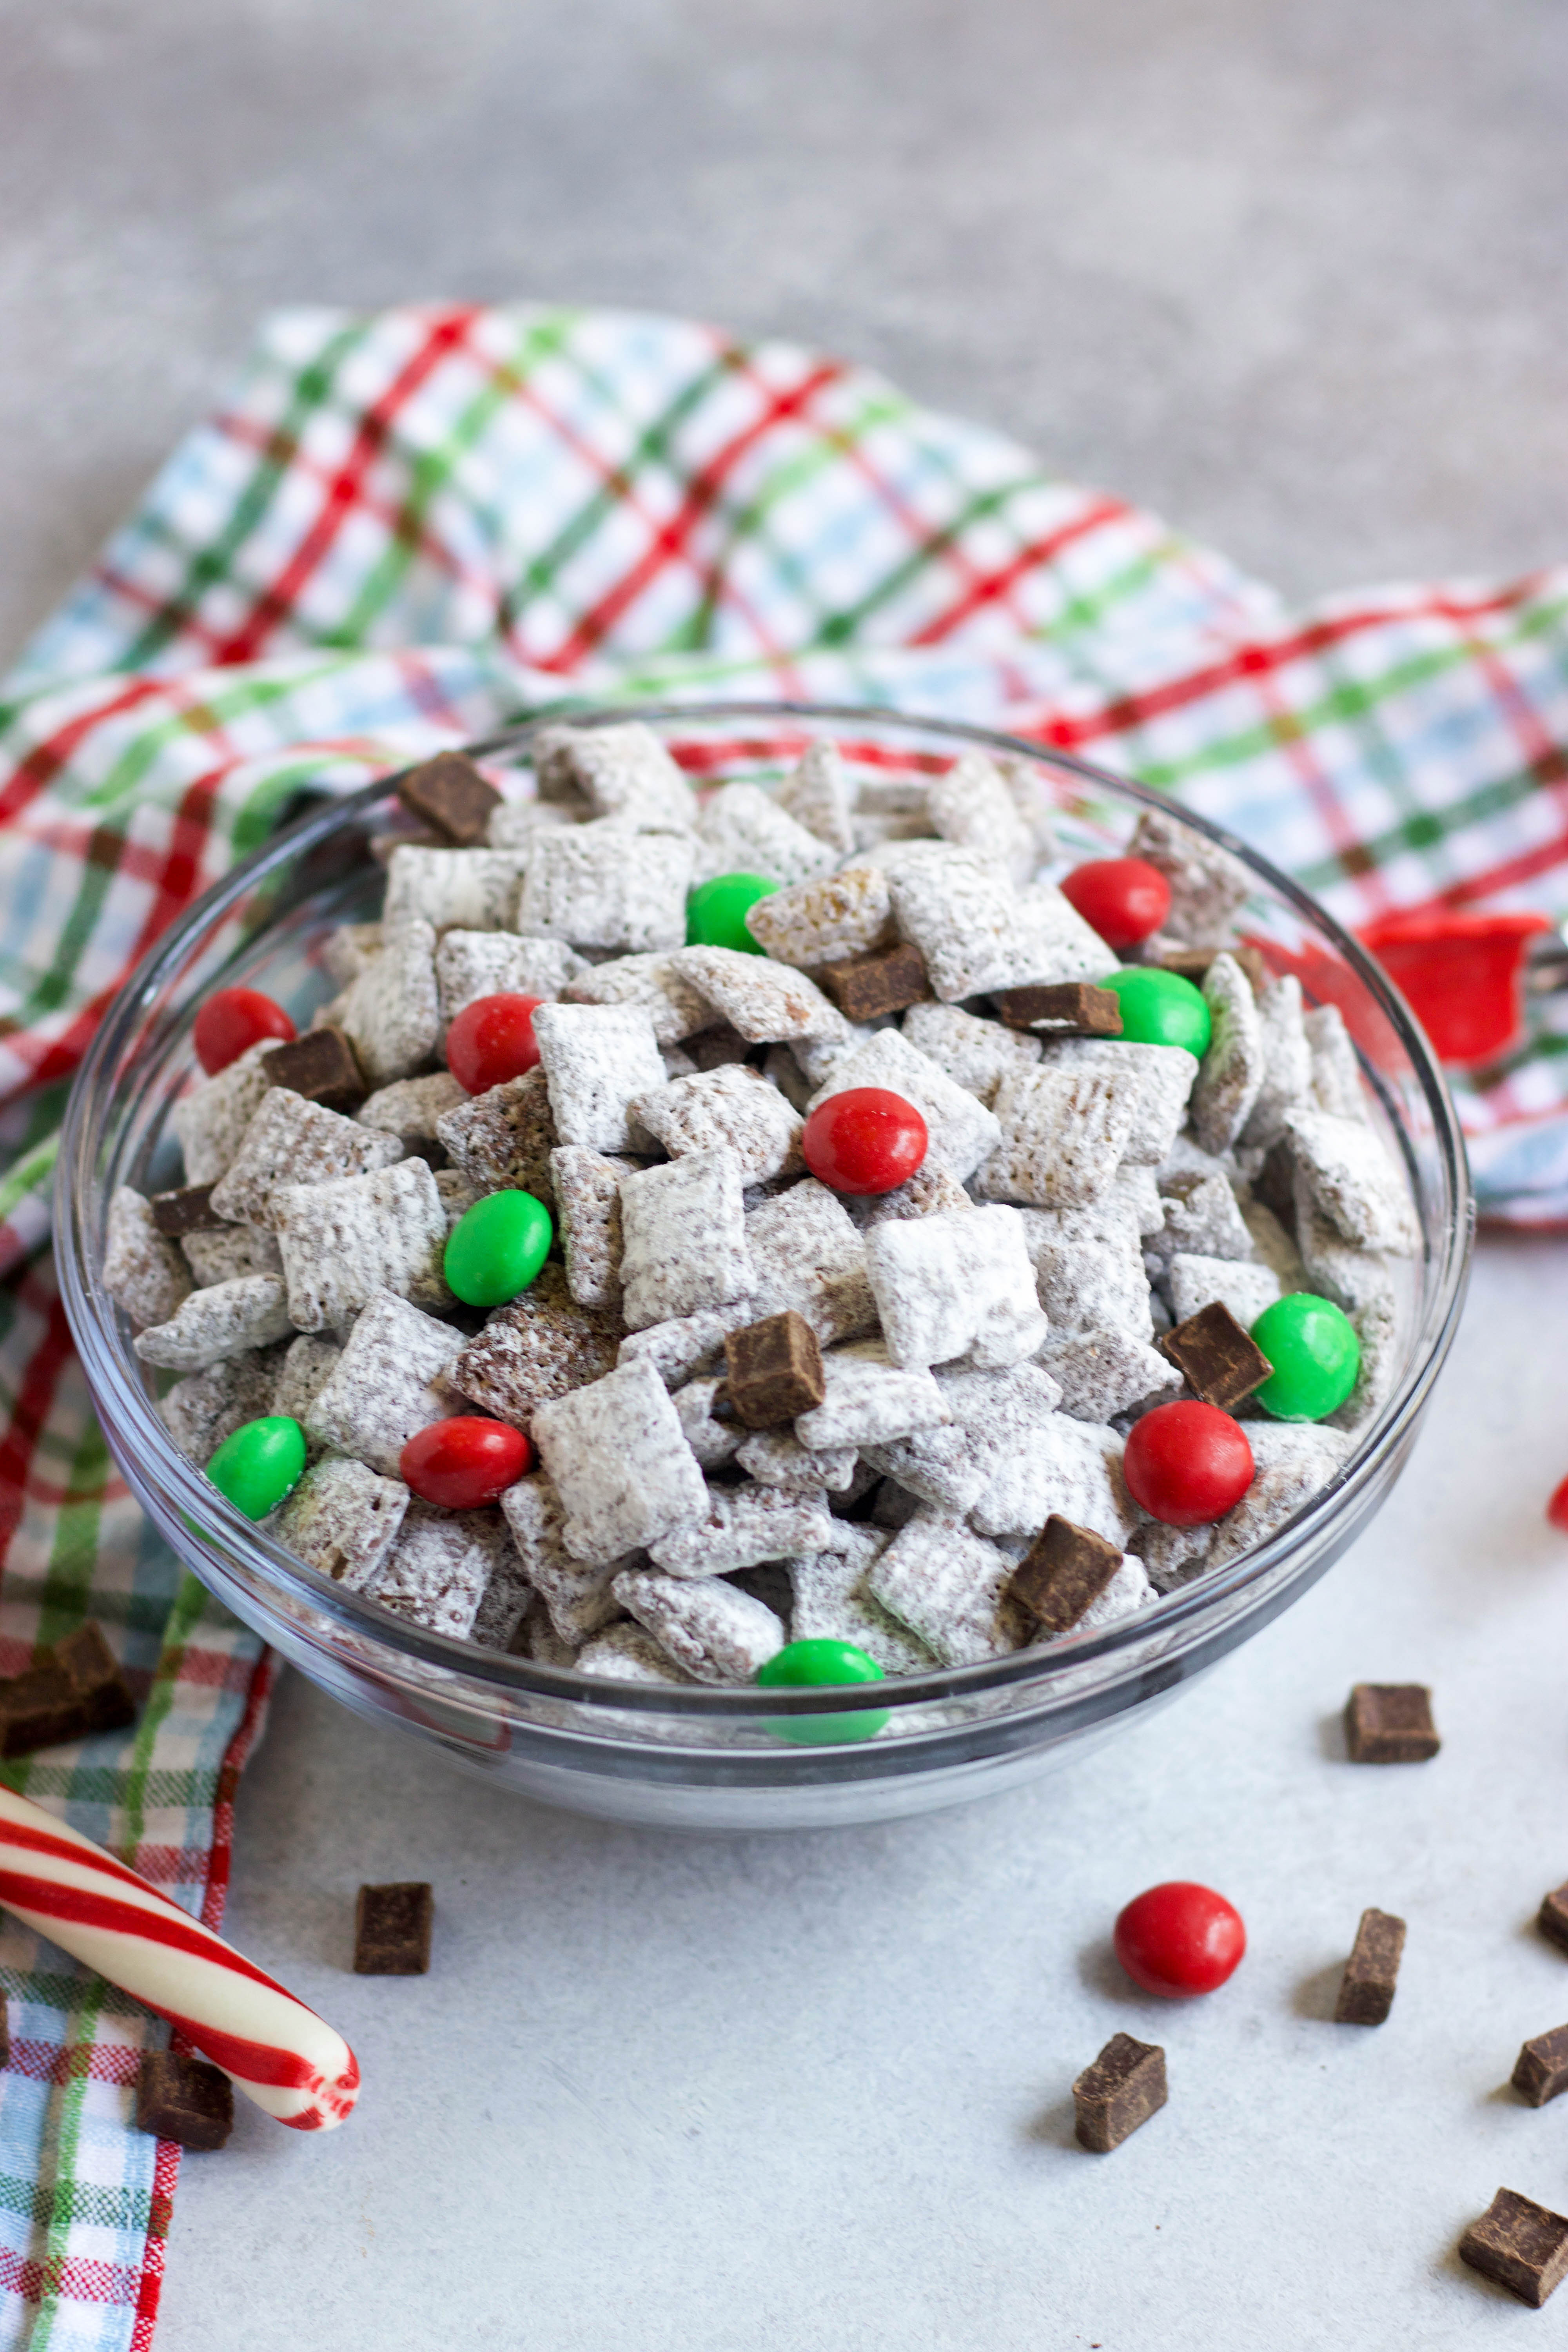 How To Make Puppy Chow Without Chocolate Chips